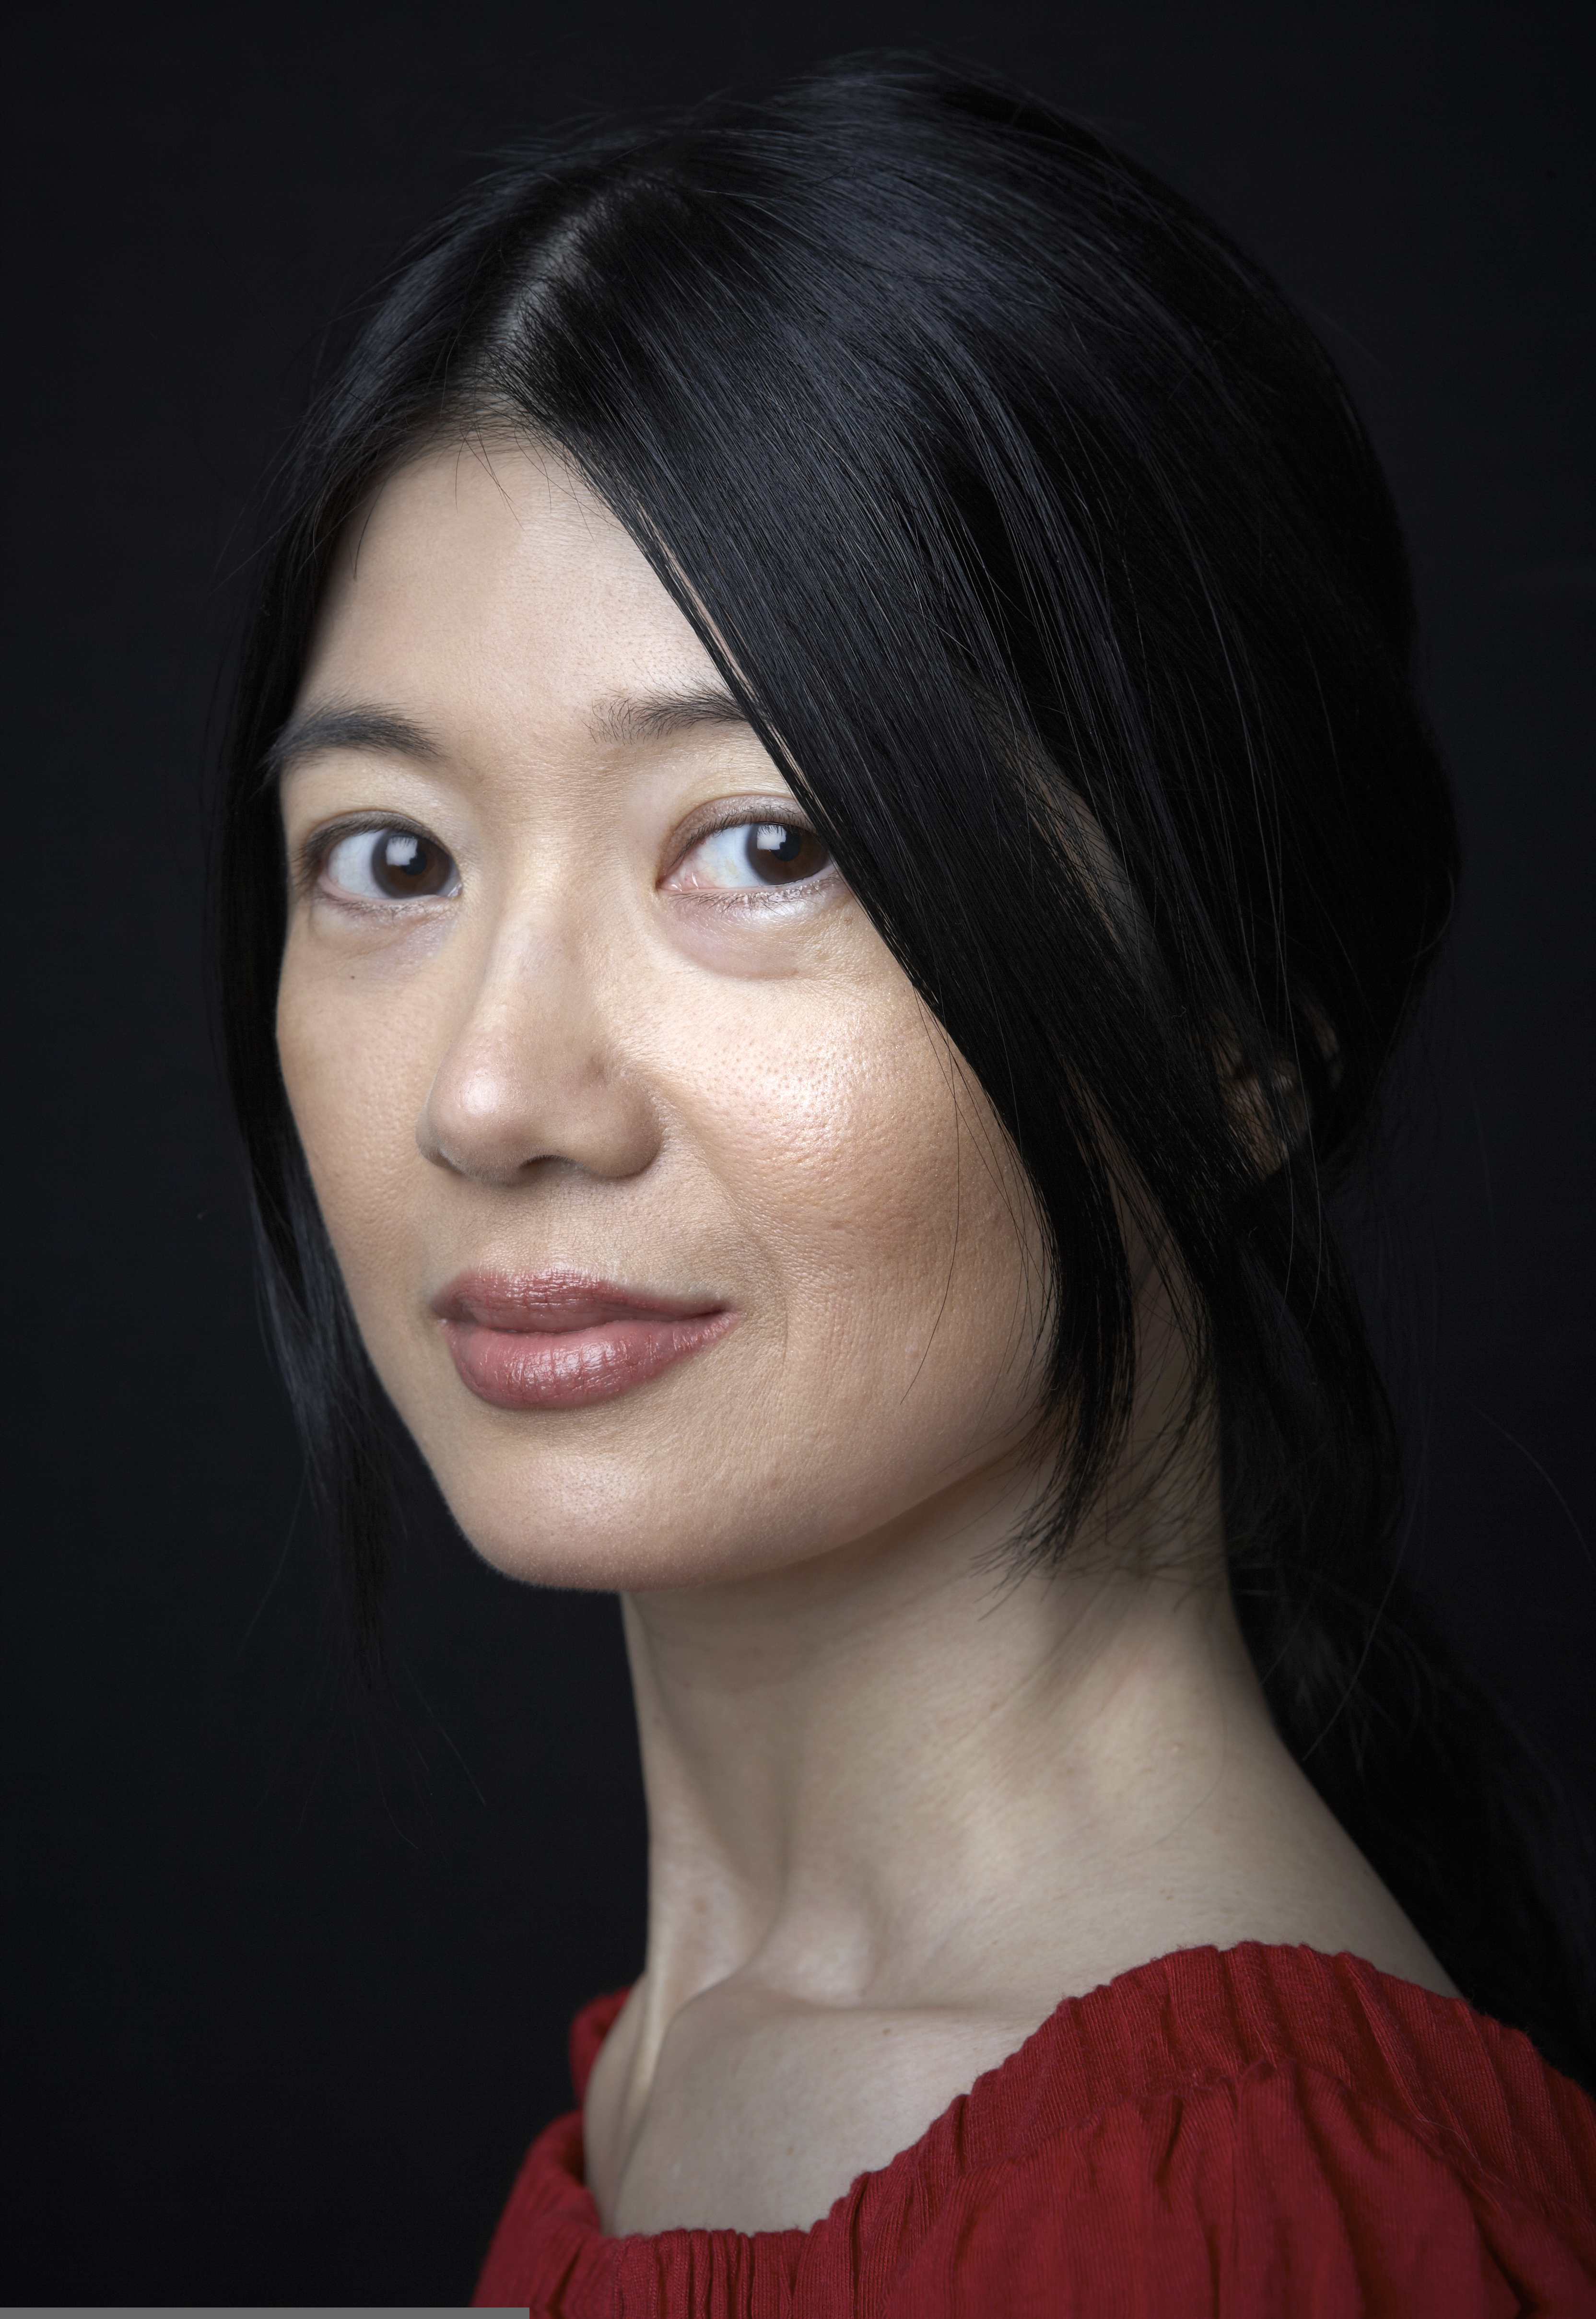 Jennifer Lim (British actress)